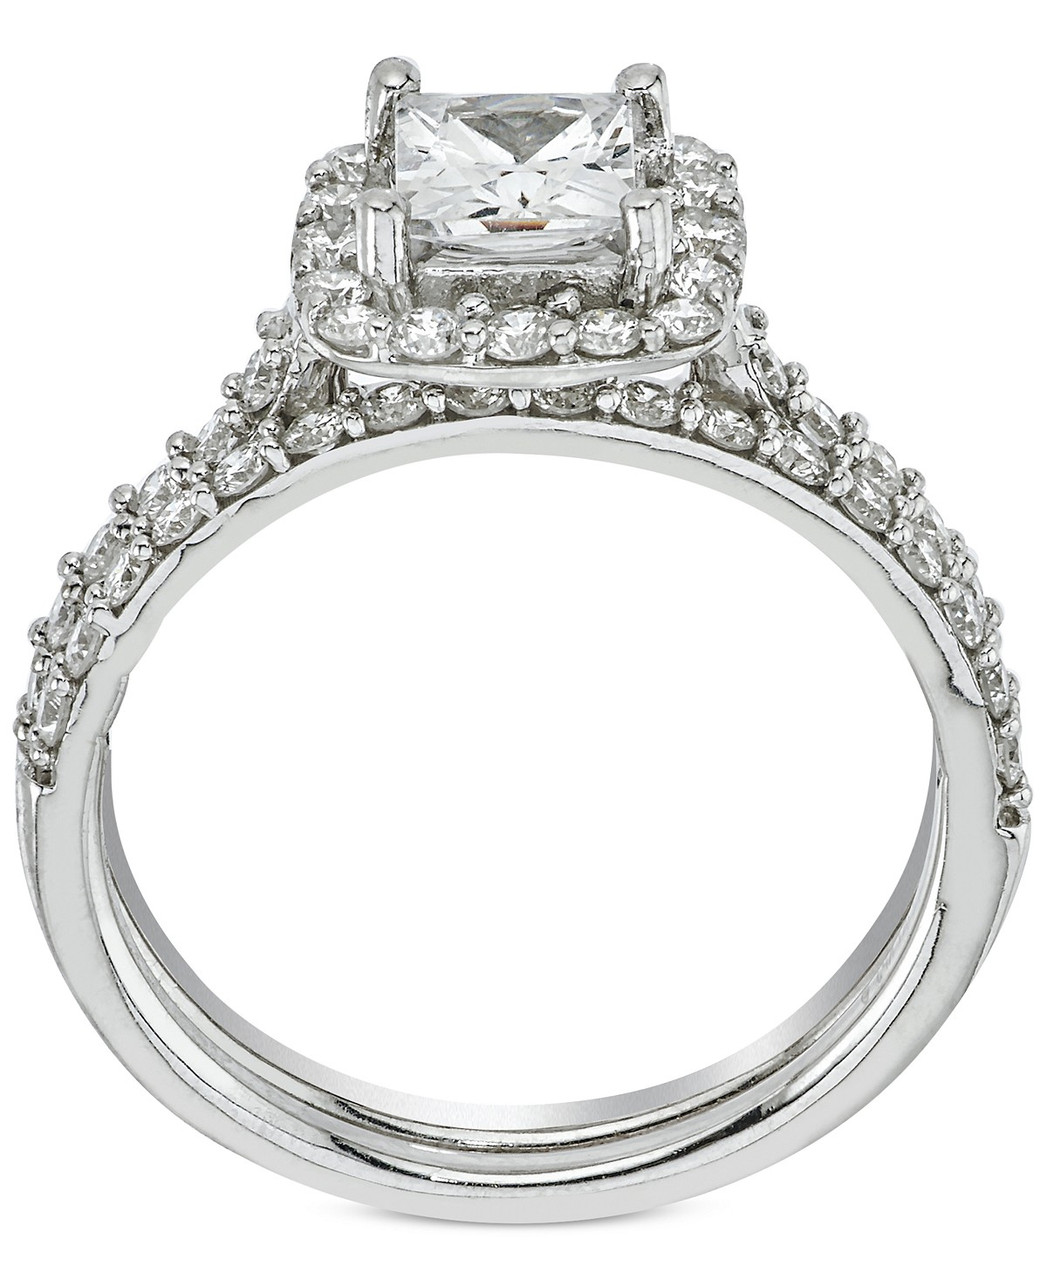 2 ct Princess Cut Halo Diamond Engagement Ring Wedding Set ...